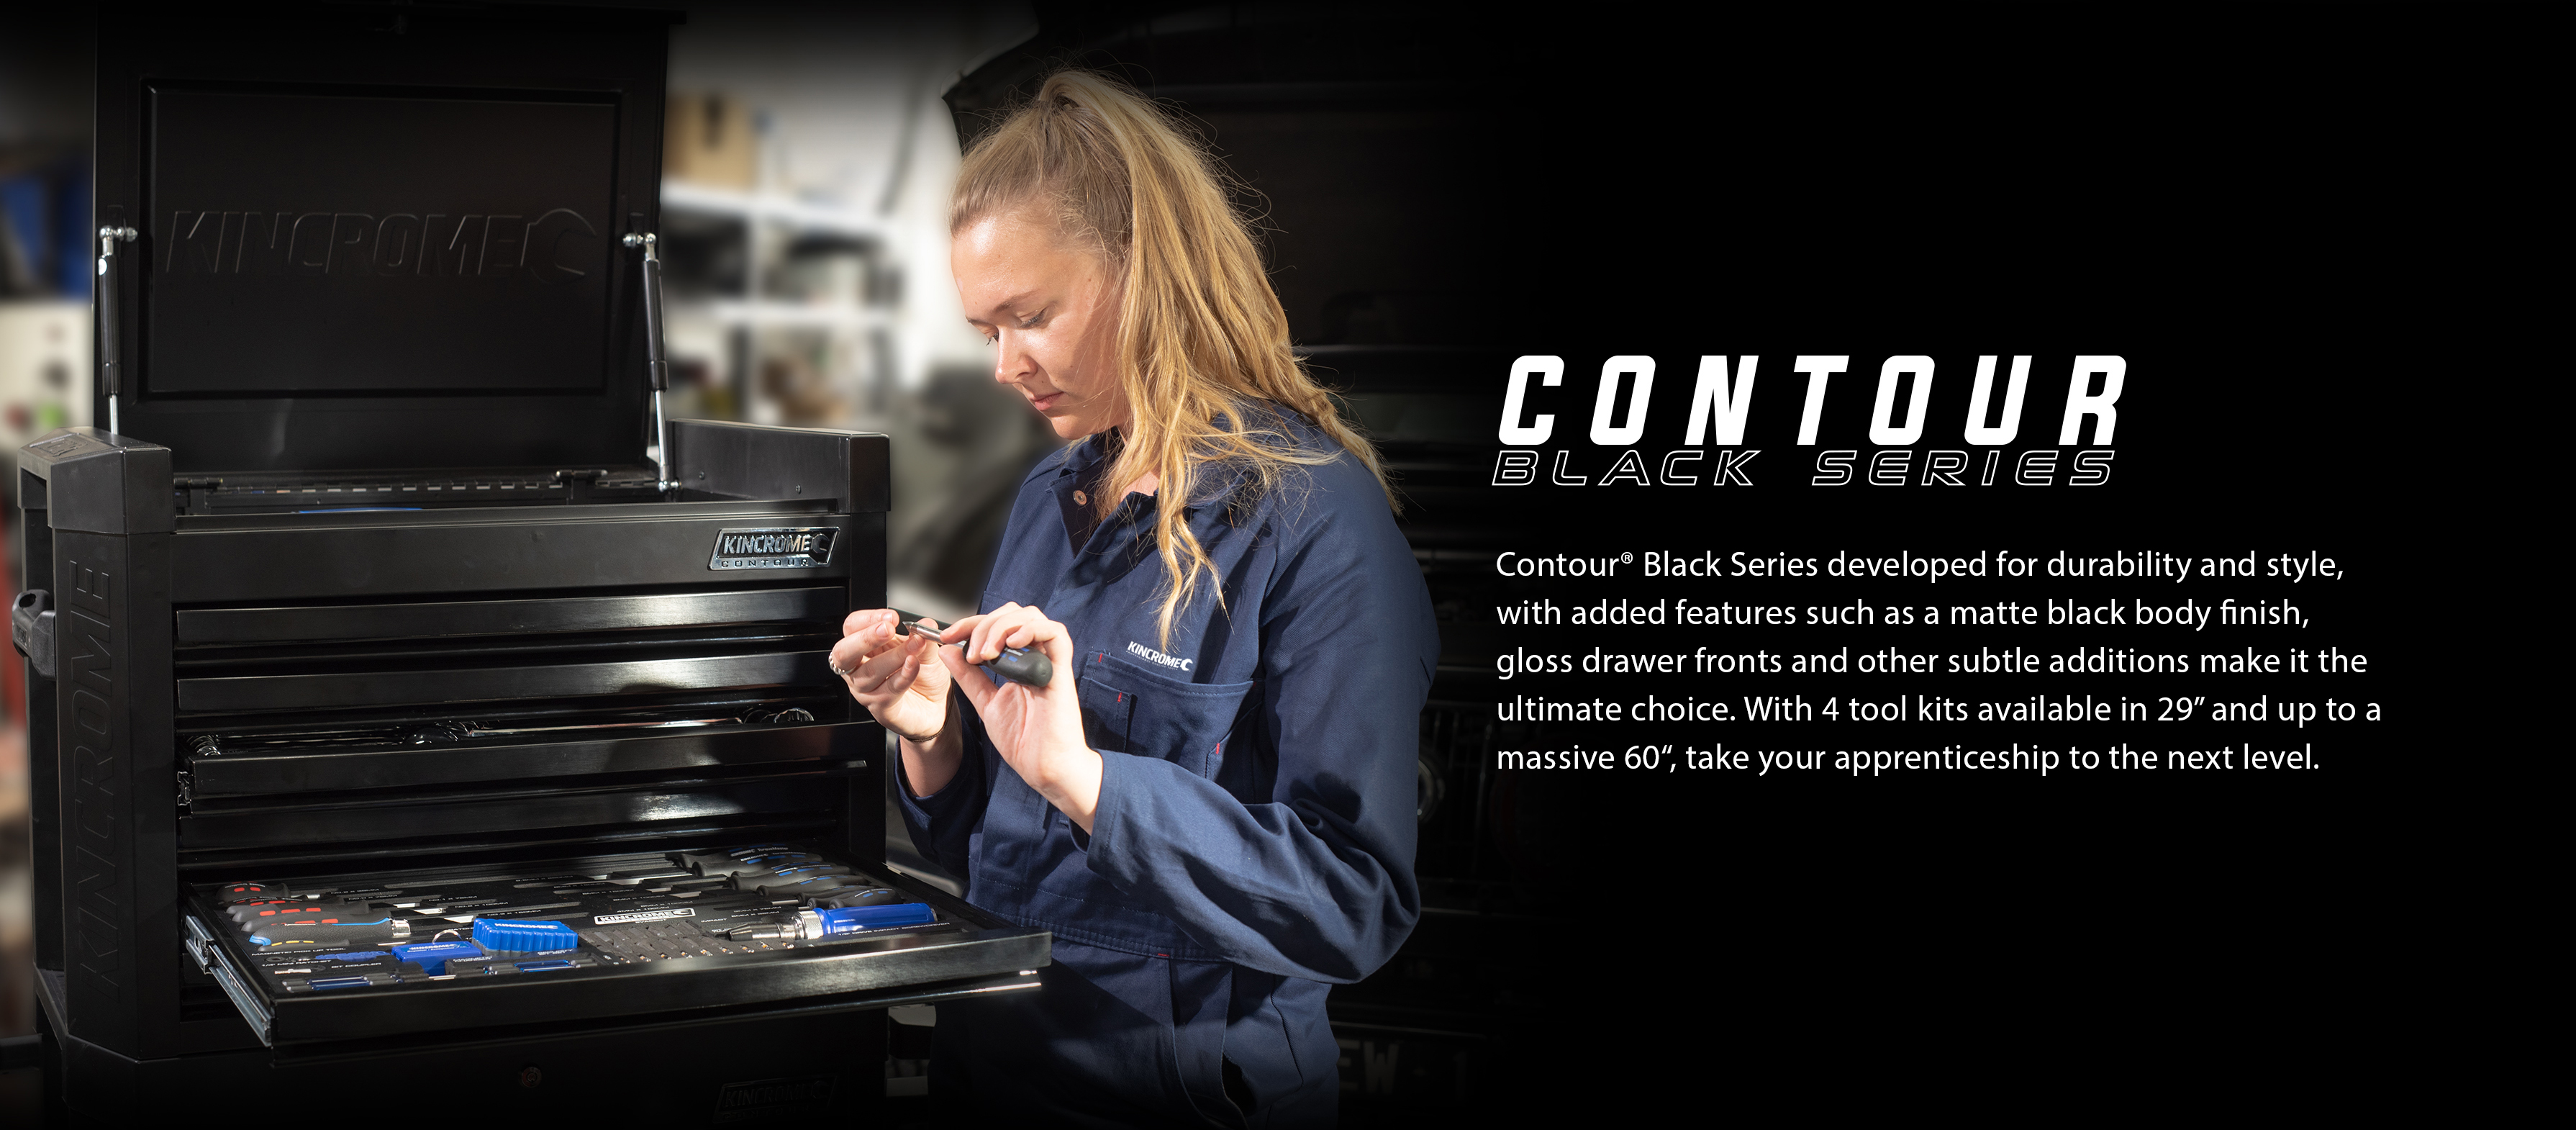 "Contour® Black Series developed for durability and style, with added features such as a matte black body finish, gloss drawer fronts and other subtle additions make it the ultimate choice. With 4 tool kits available in 29"" and up to a massive 60"", take your apprenticeship to the next level."